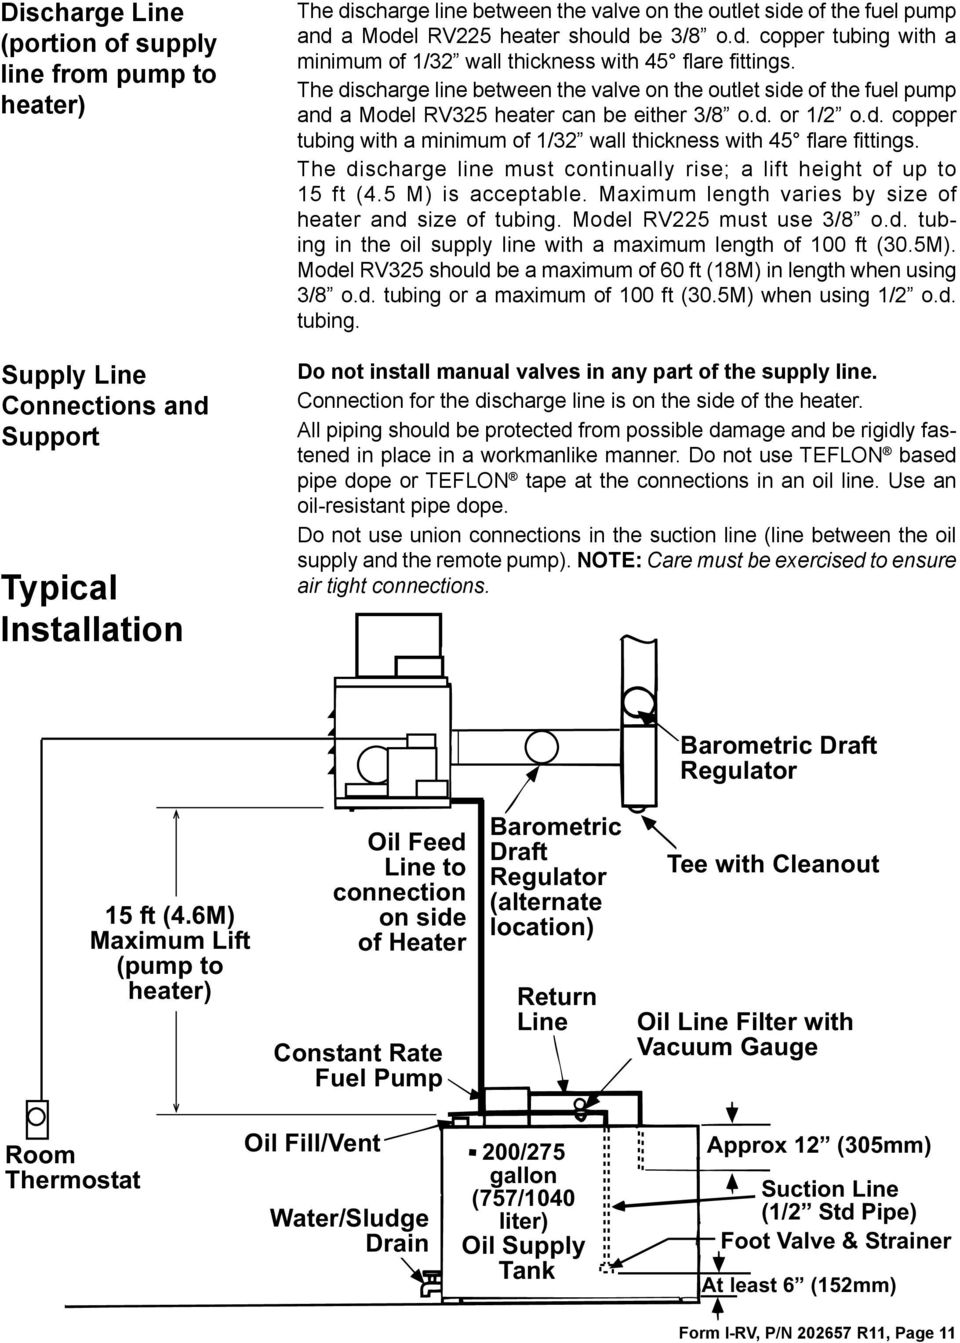 Installation Operation Maintenance Manual And Reference Guide Rv Wiring Diagram Besides 50 Plug On Amp The Discharge Line Between Valve Outlet Side Of Fuel Pump A